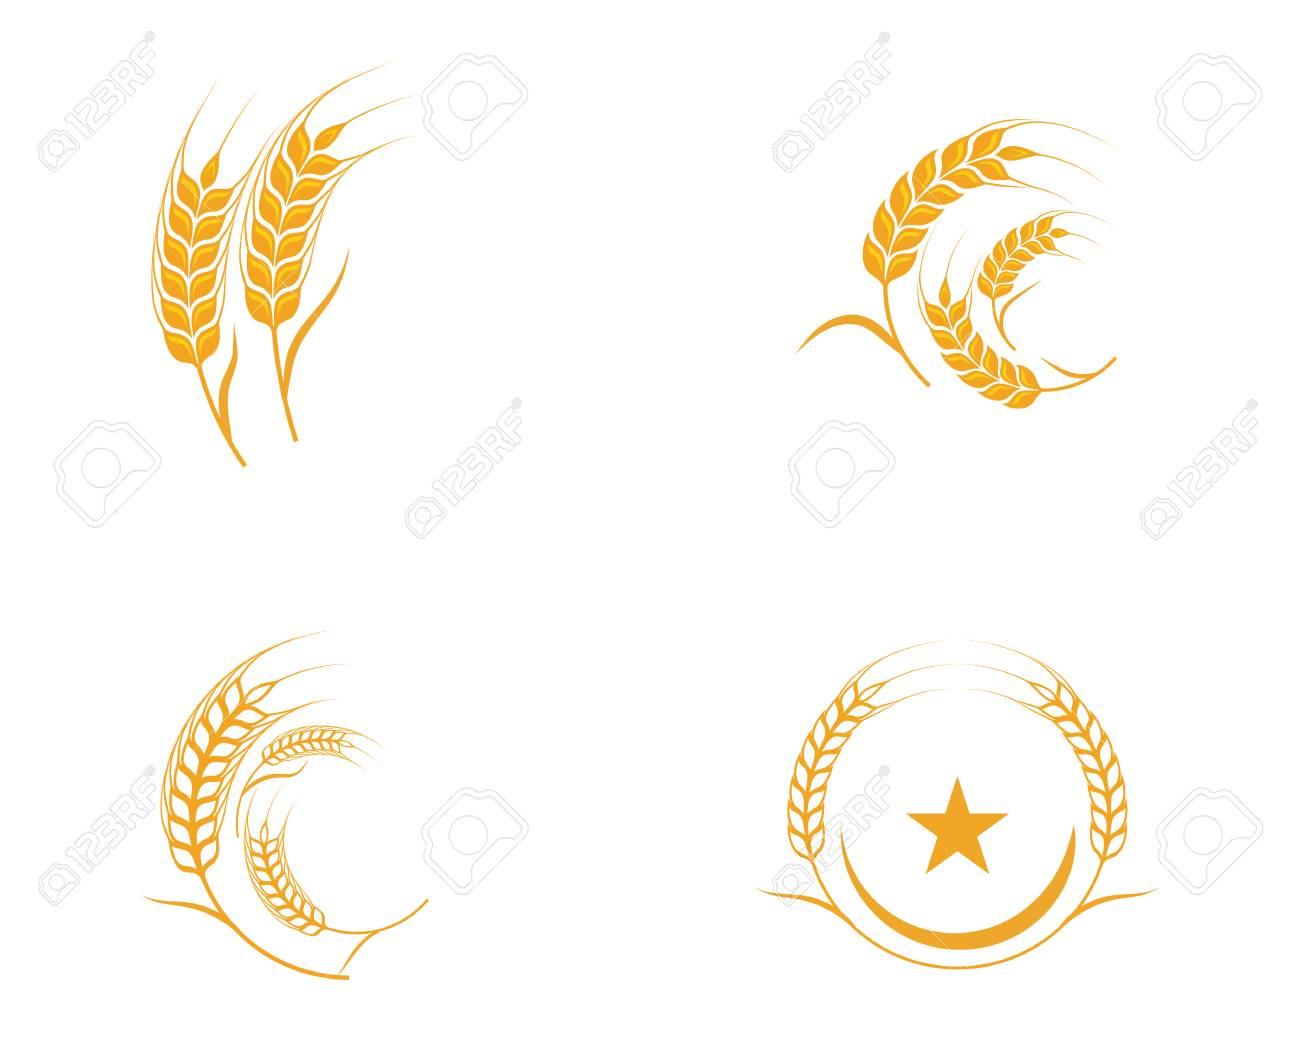 Agriculture wheat Template vector icon design illustration - 94984022